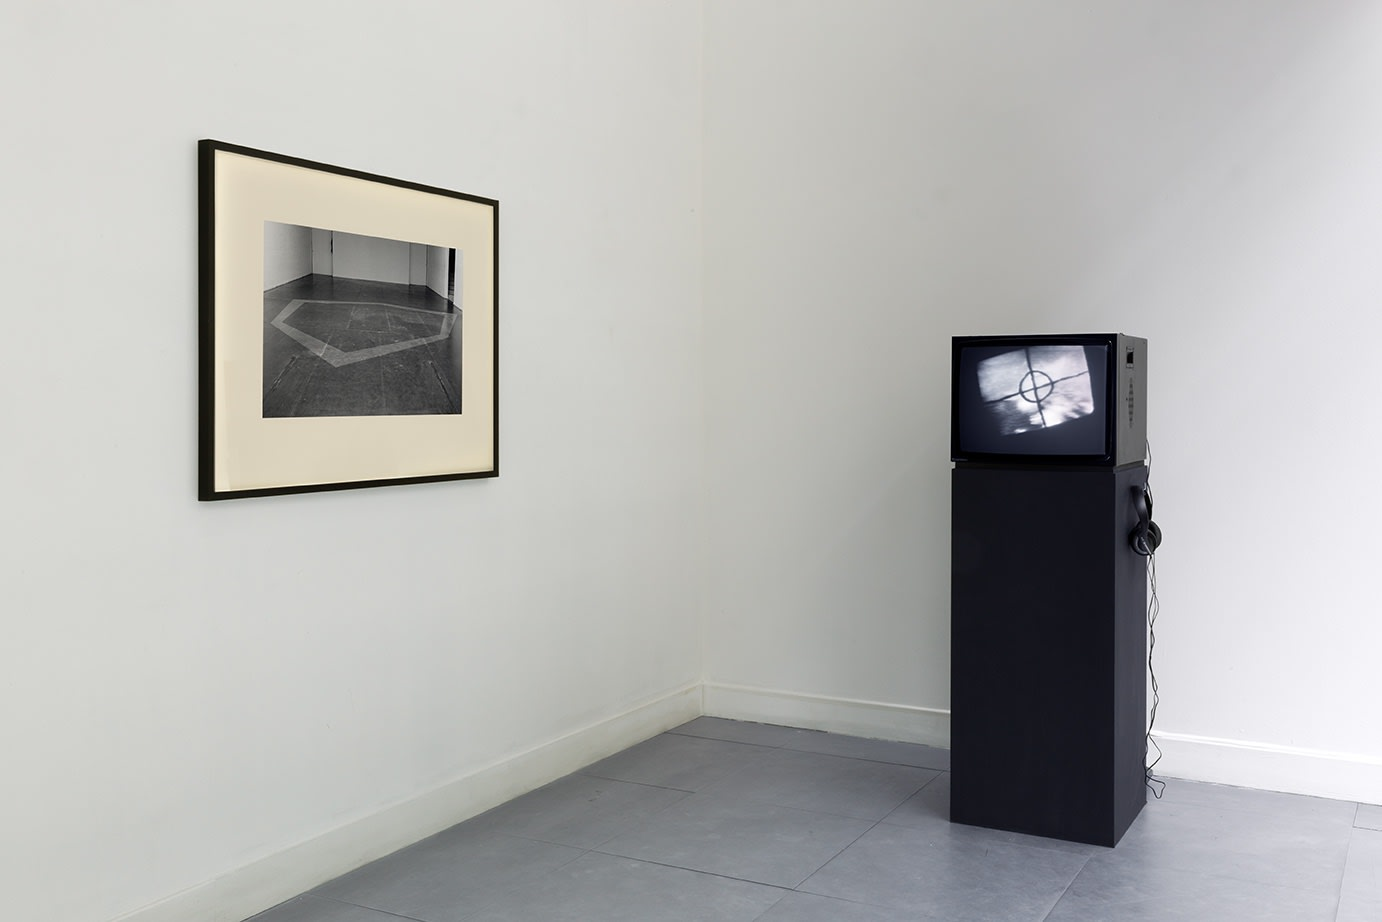 David Hall | Situations Envisaged installation view at Richard Saltoun Gallery.